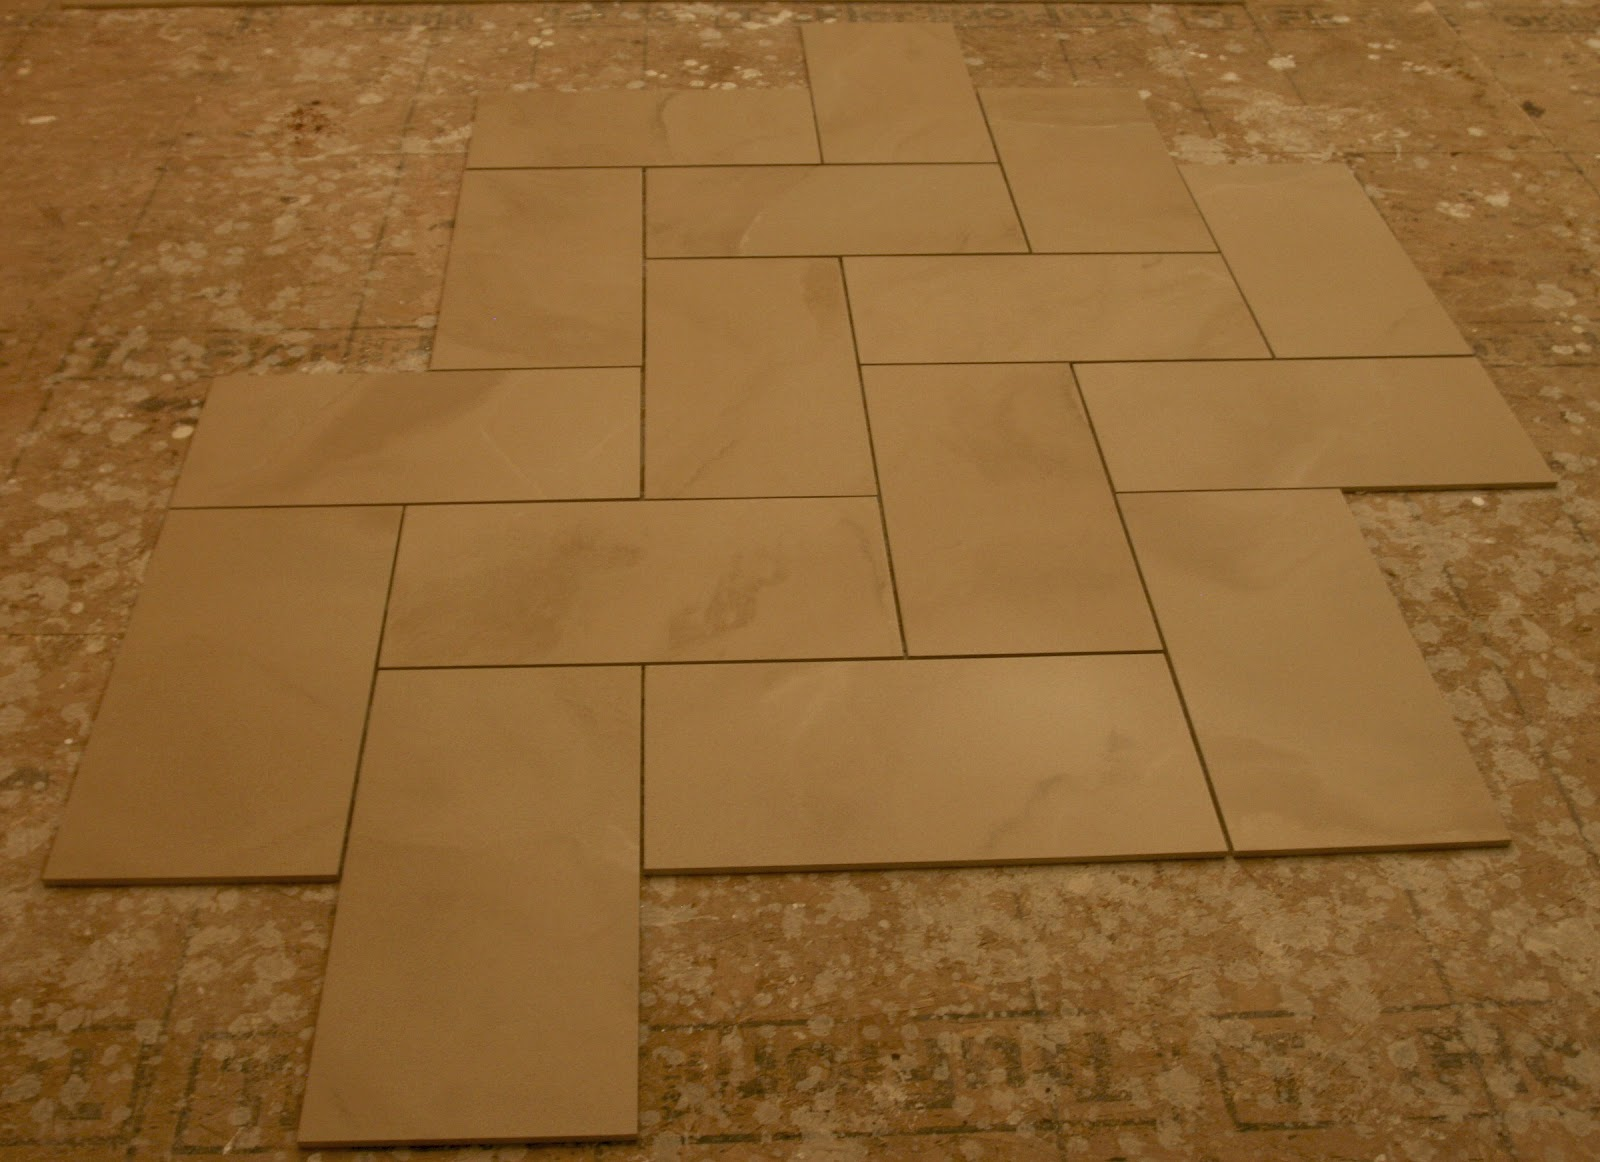 3 Tile Patterns For Floors